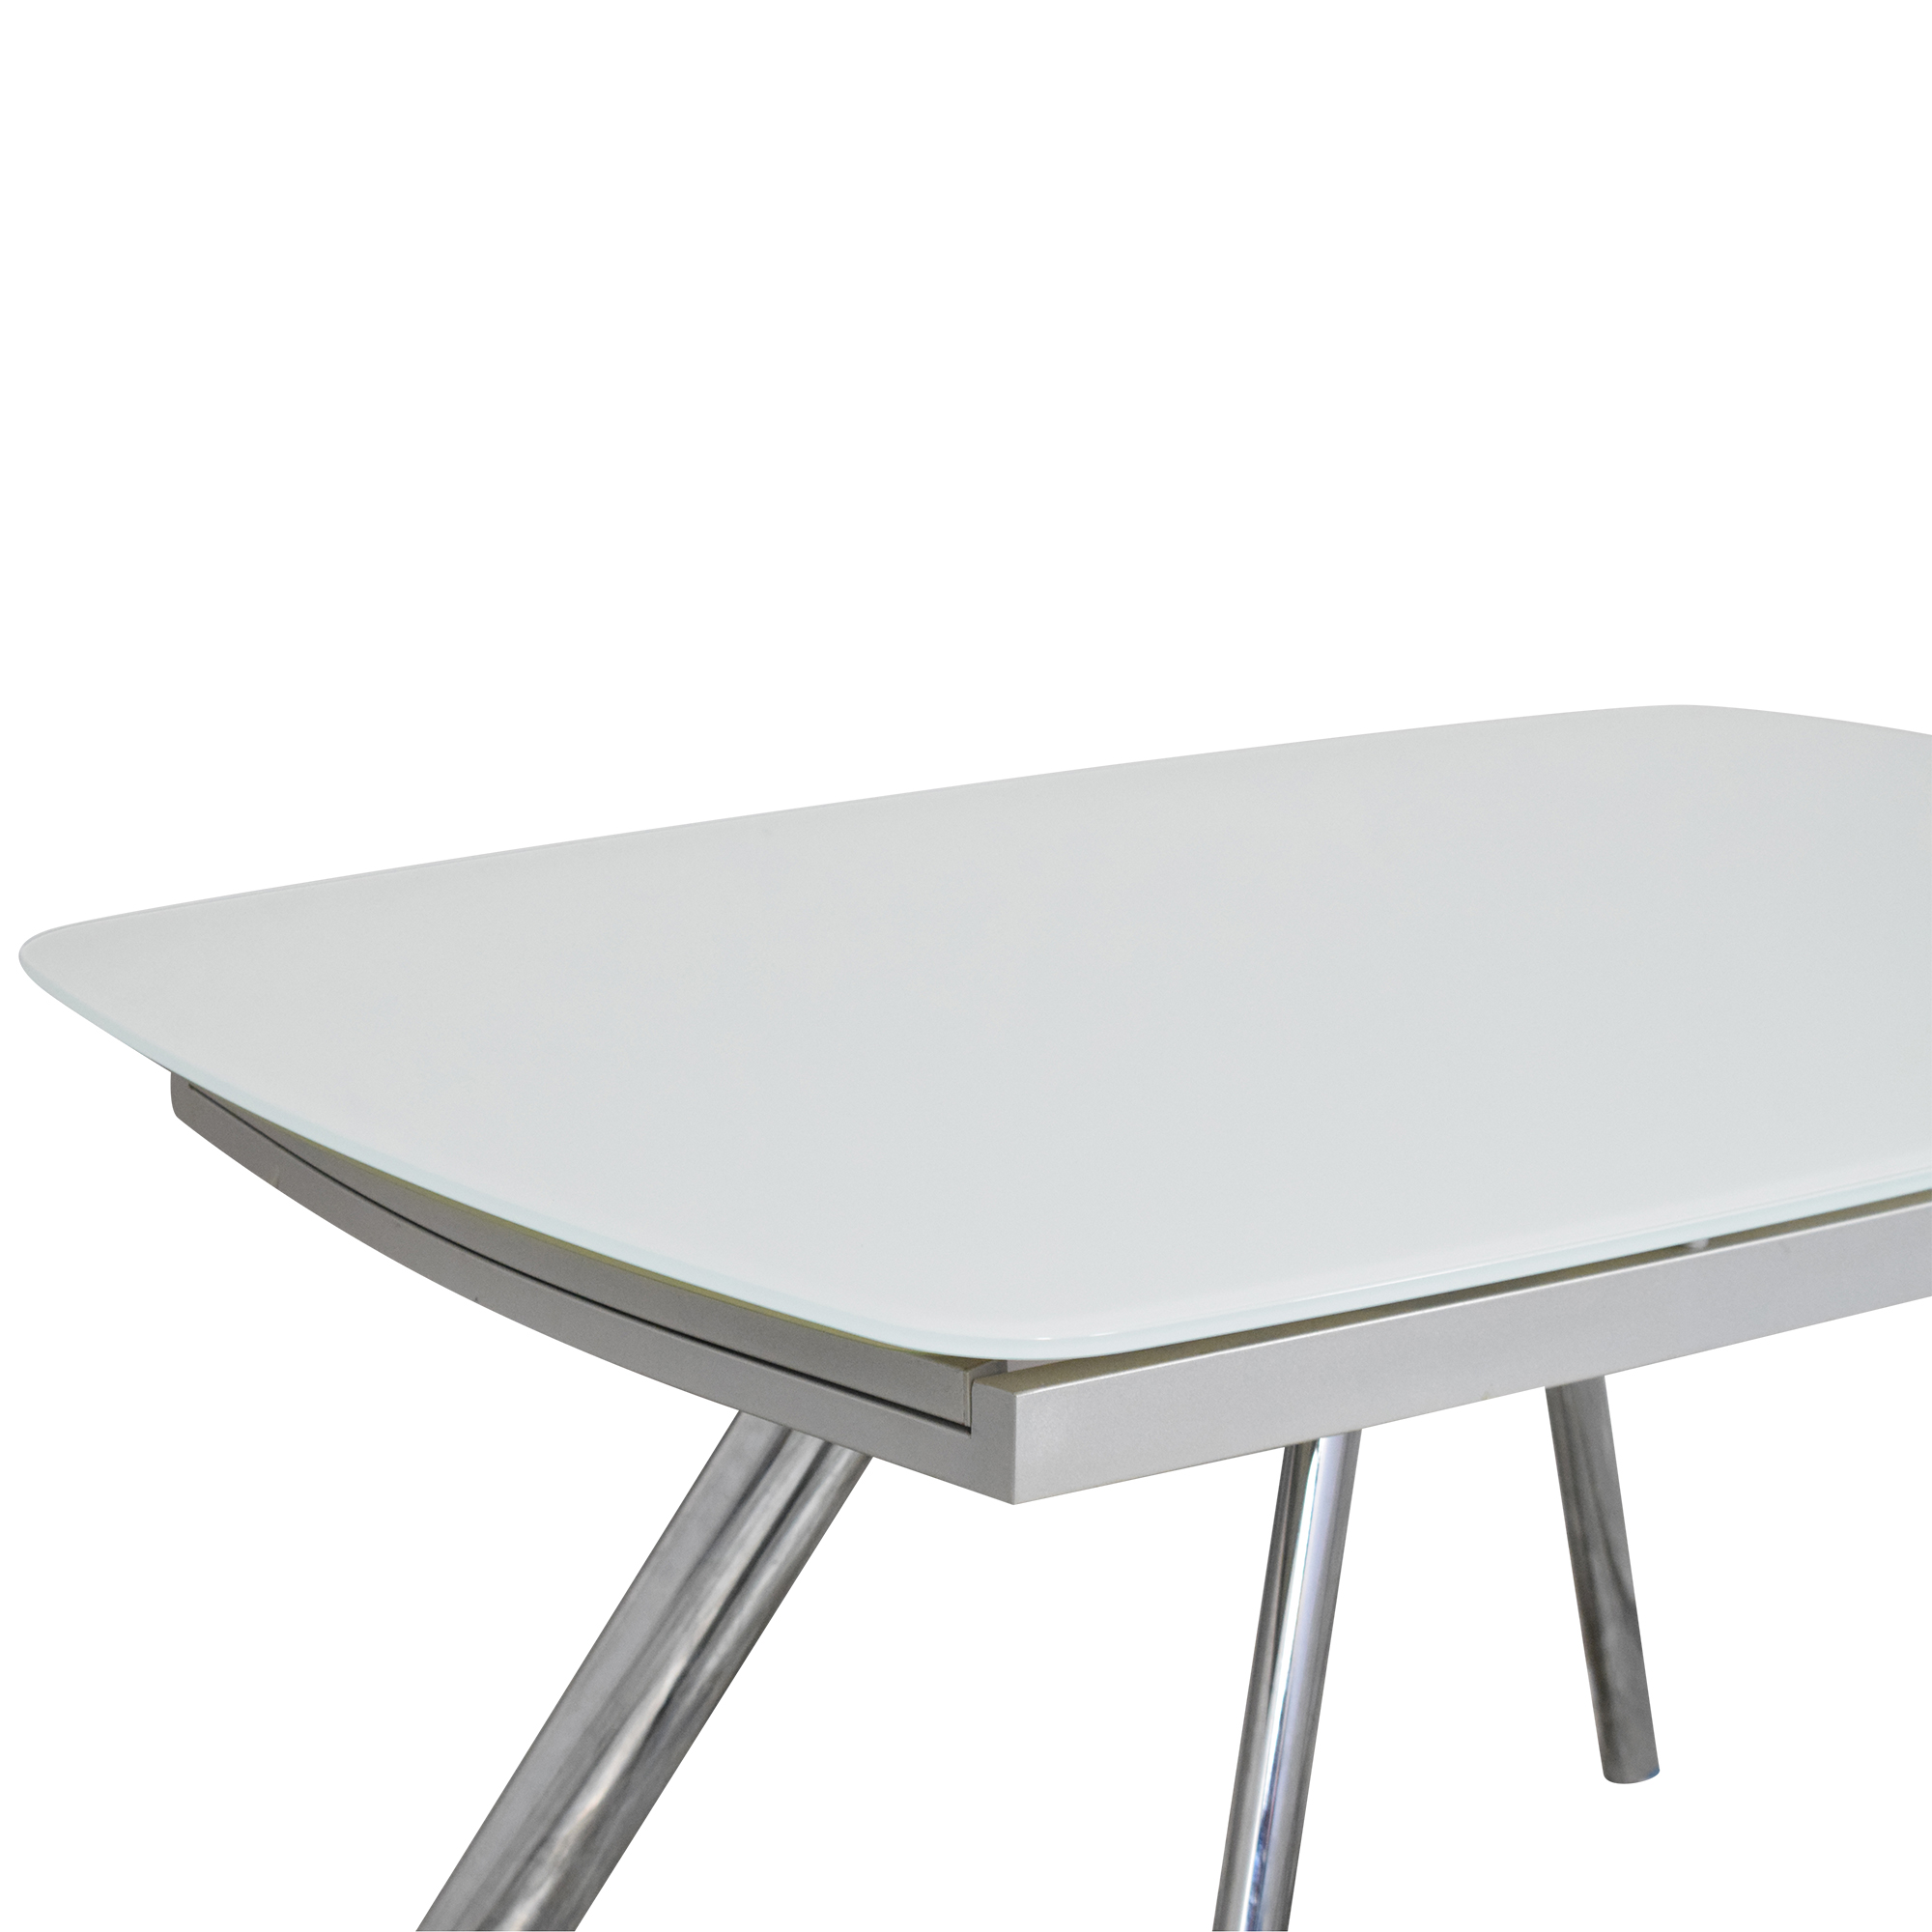 Raymour & Flanigan Raymour & Flanigan Paloma Extendable Dining Table second hand